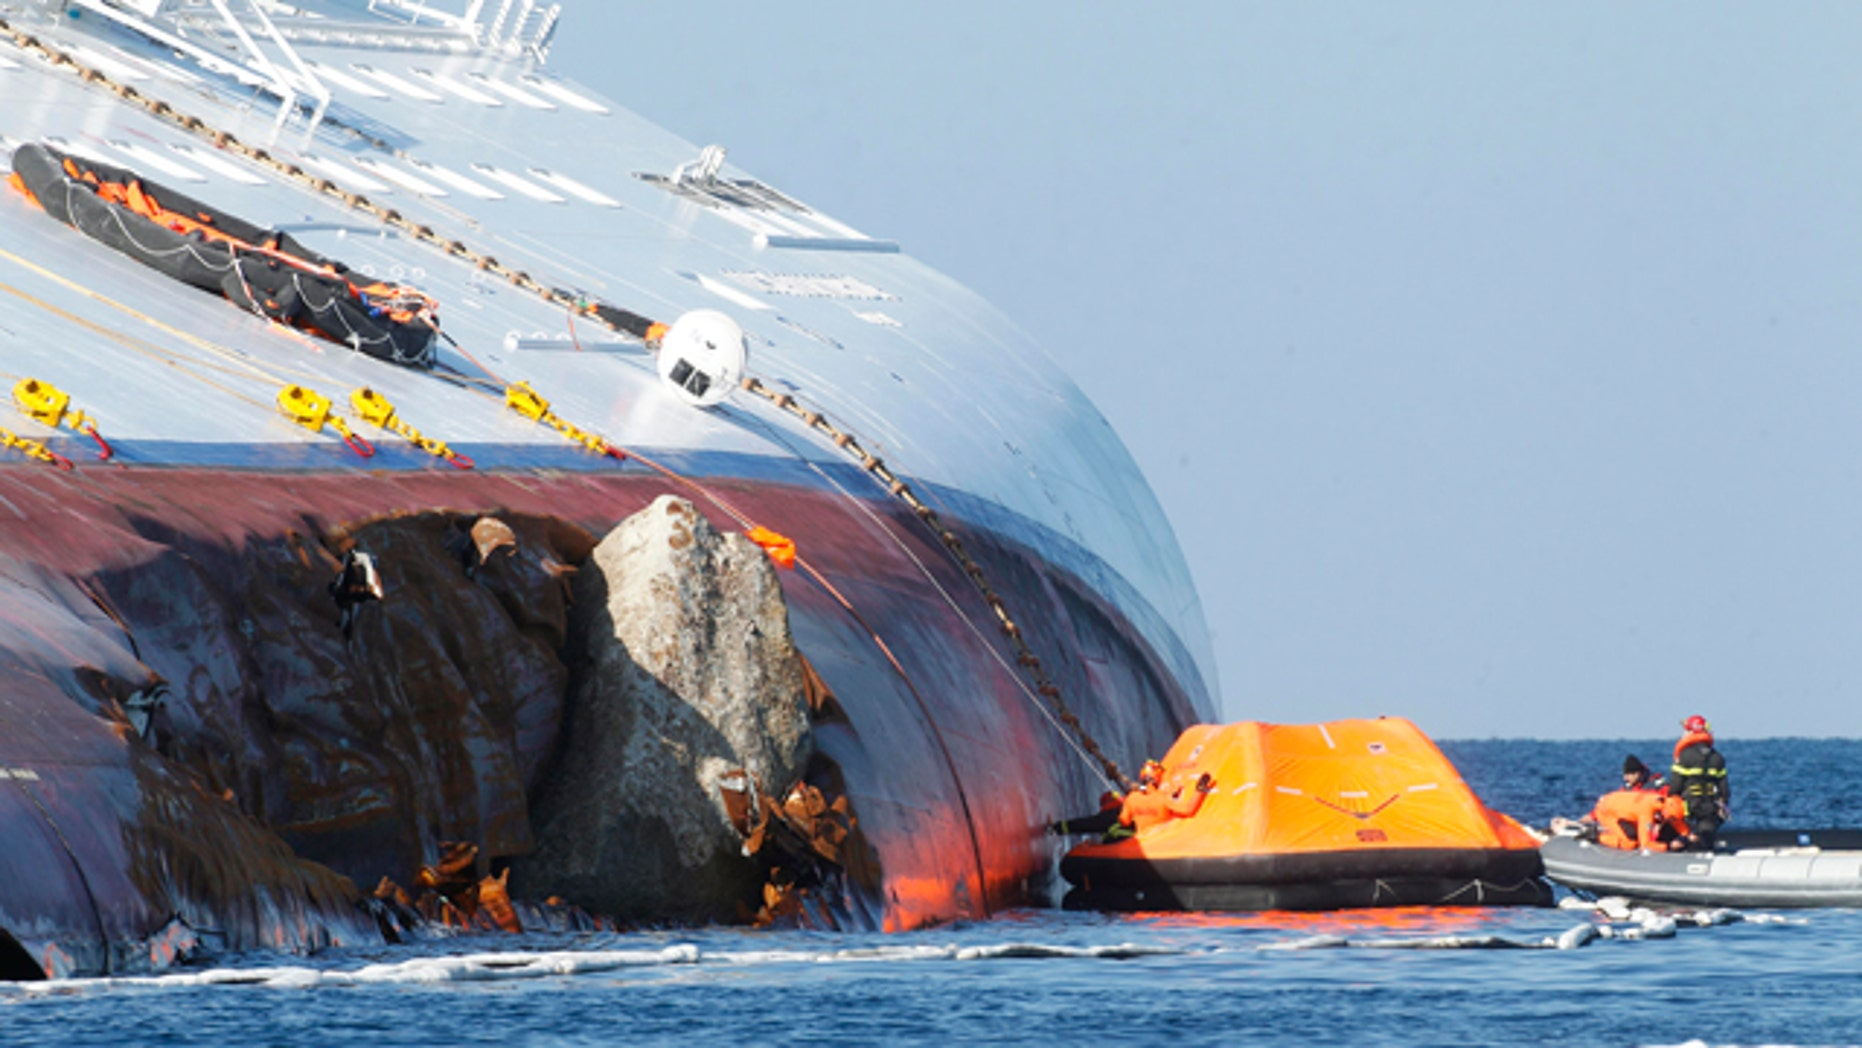 Jan. 24: Oil recovery experts work near the flaw of the grounded cruise ship Costa Concordia off the Tuscan island of Giglio, Italy.